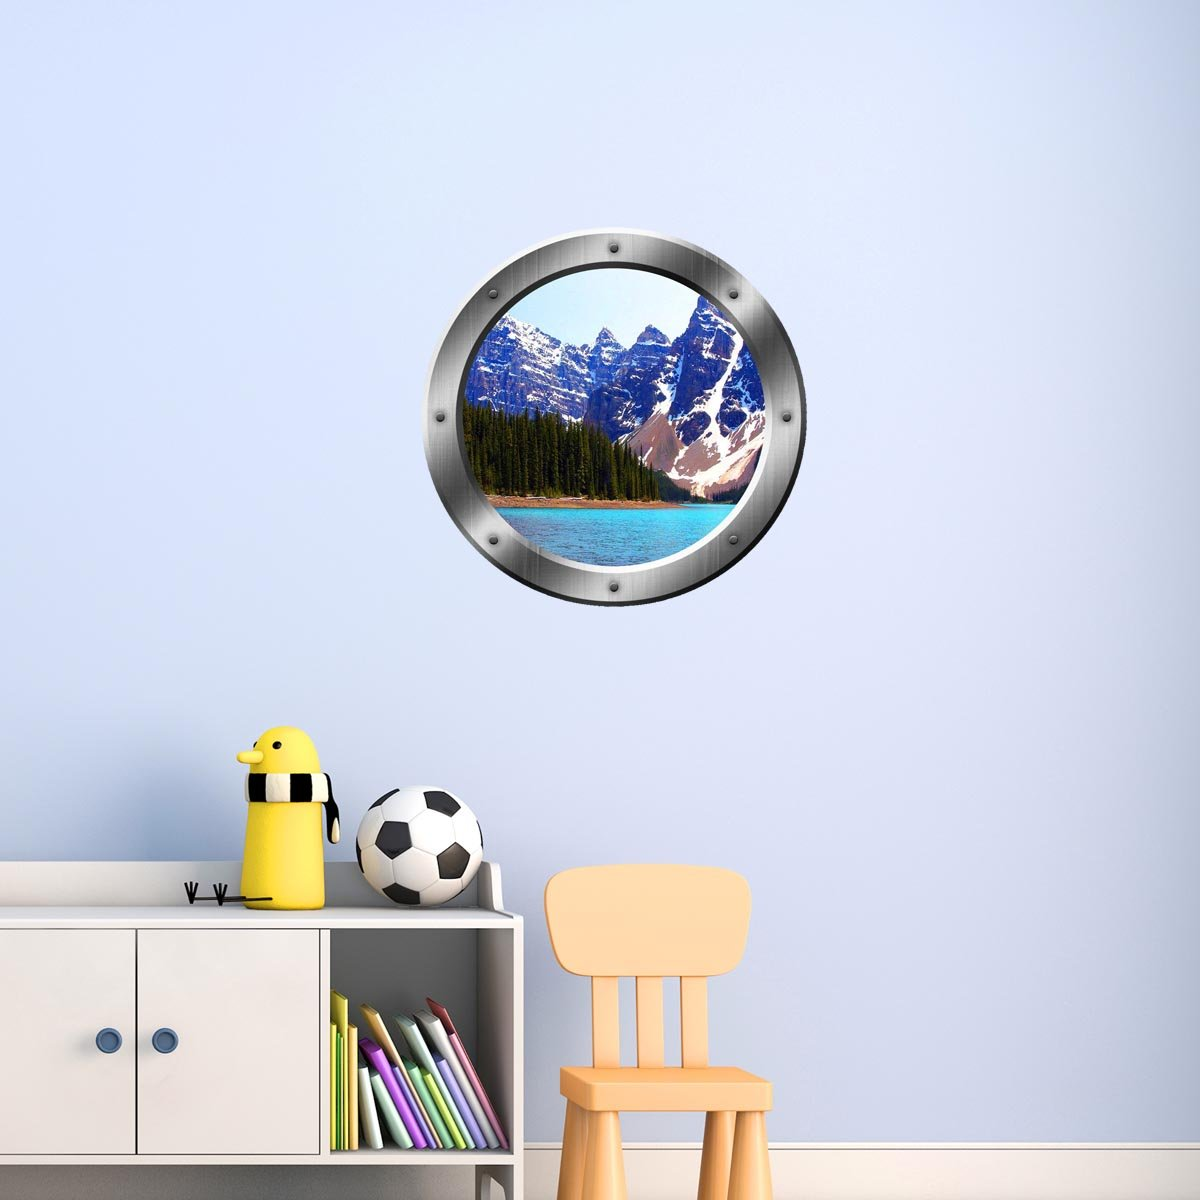 VWAQ Peel & Stick Snowy Mountain Lake View Silver Porthole Vinyl Wall Decal - SP21 - VWAQ Vinyl Wall Art Quotes and Prints